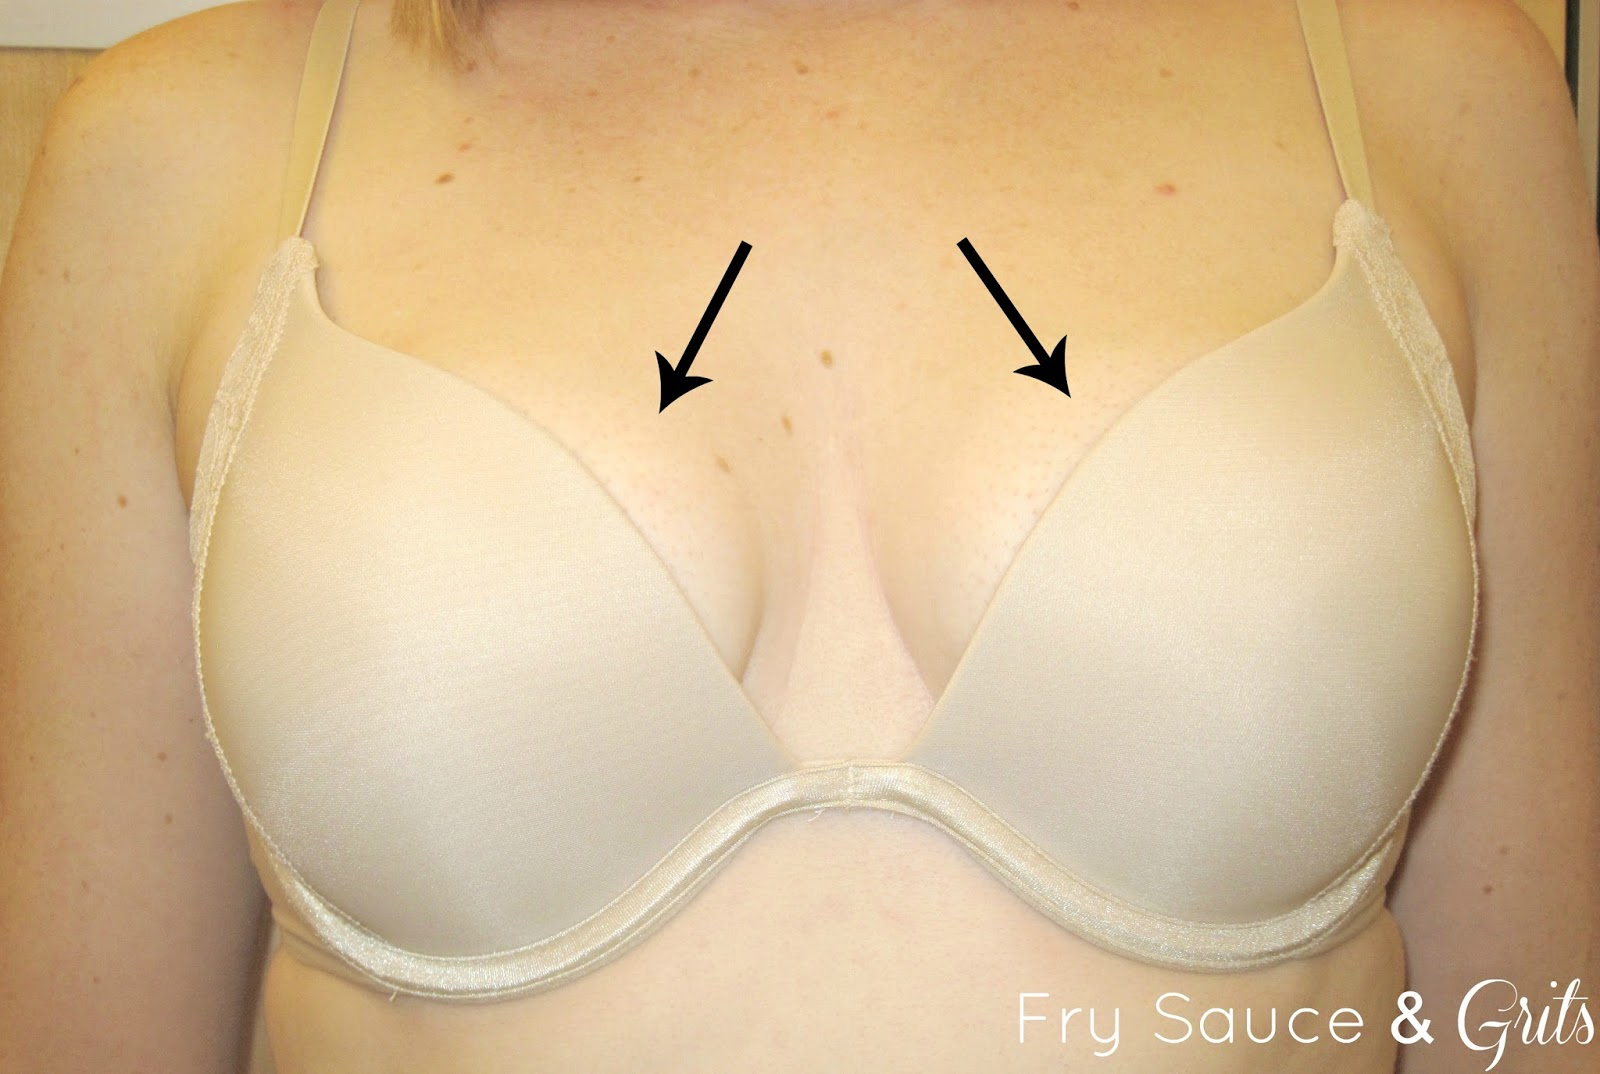 Bra Sizing from FrySauceandGrits.com